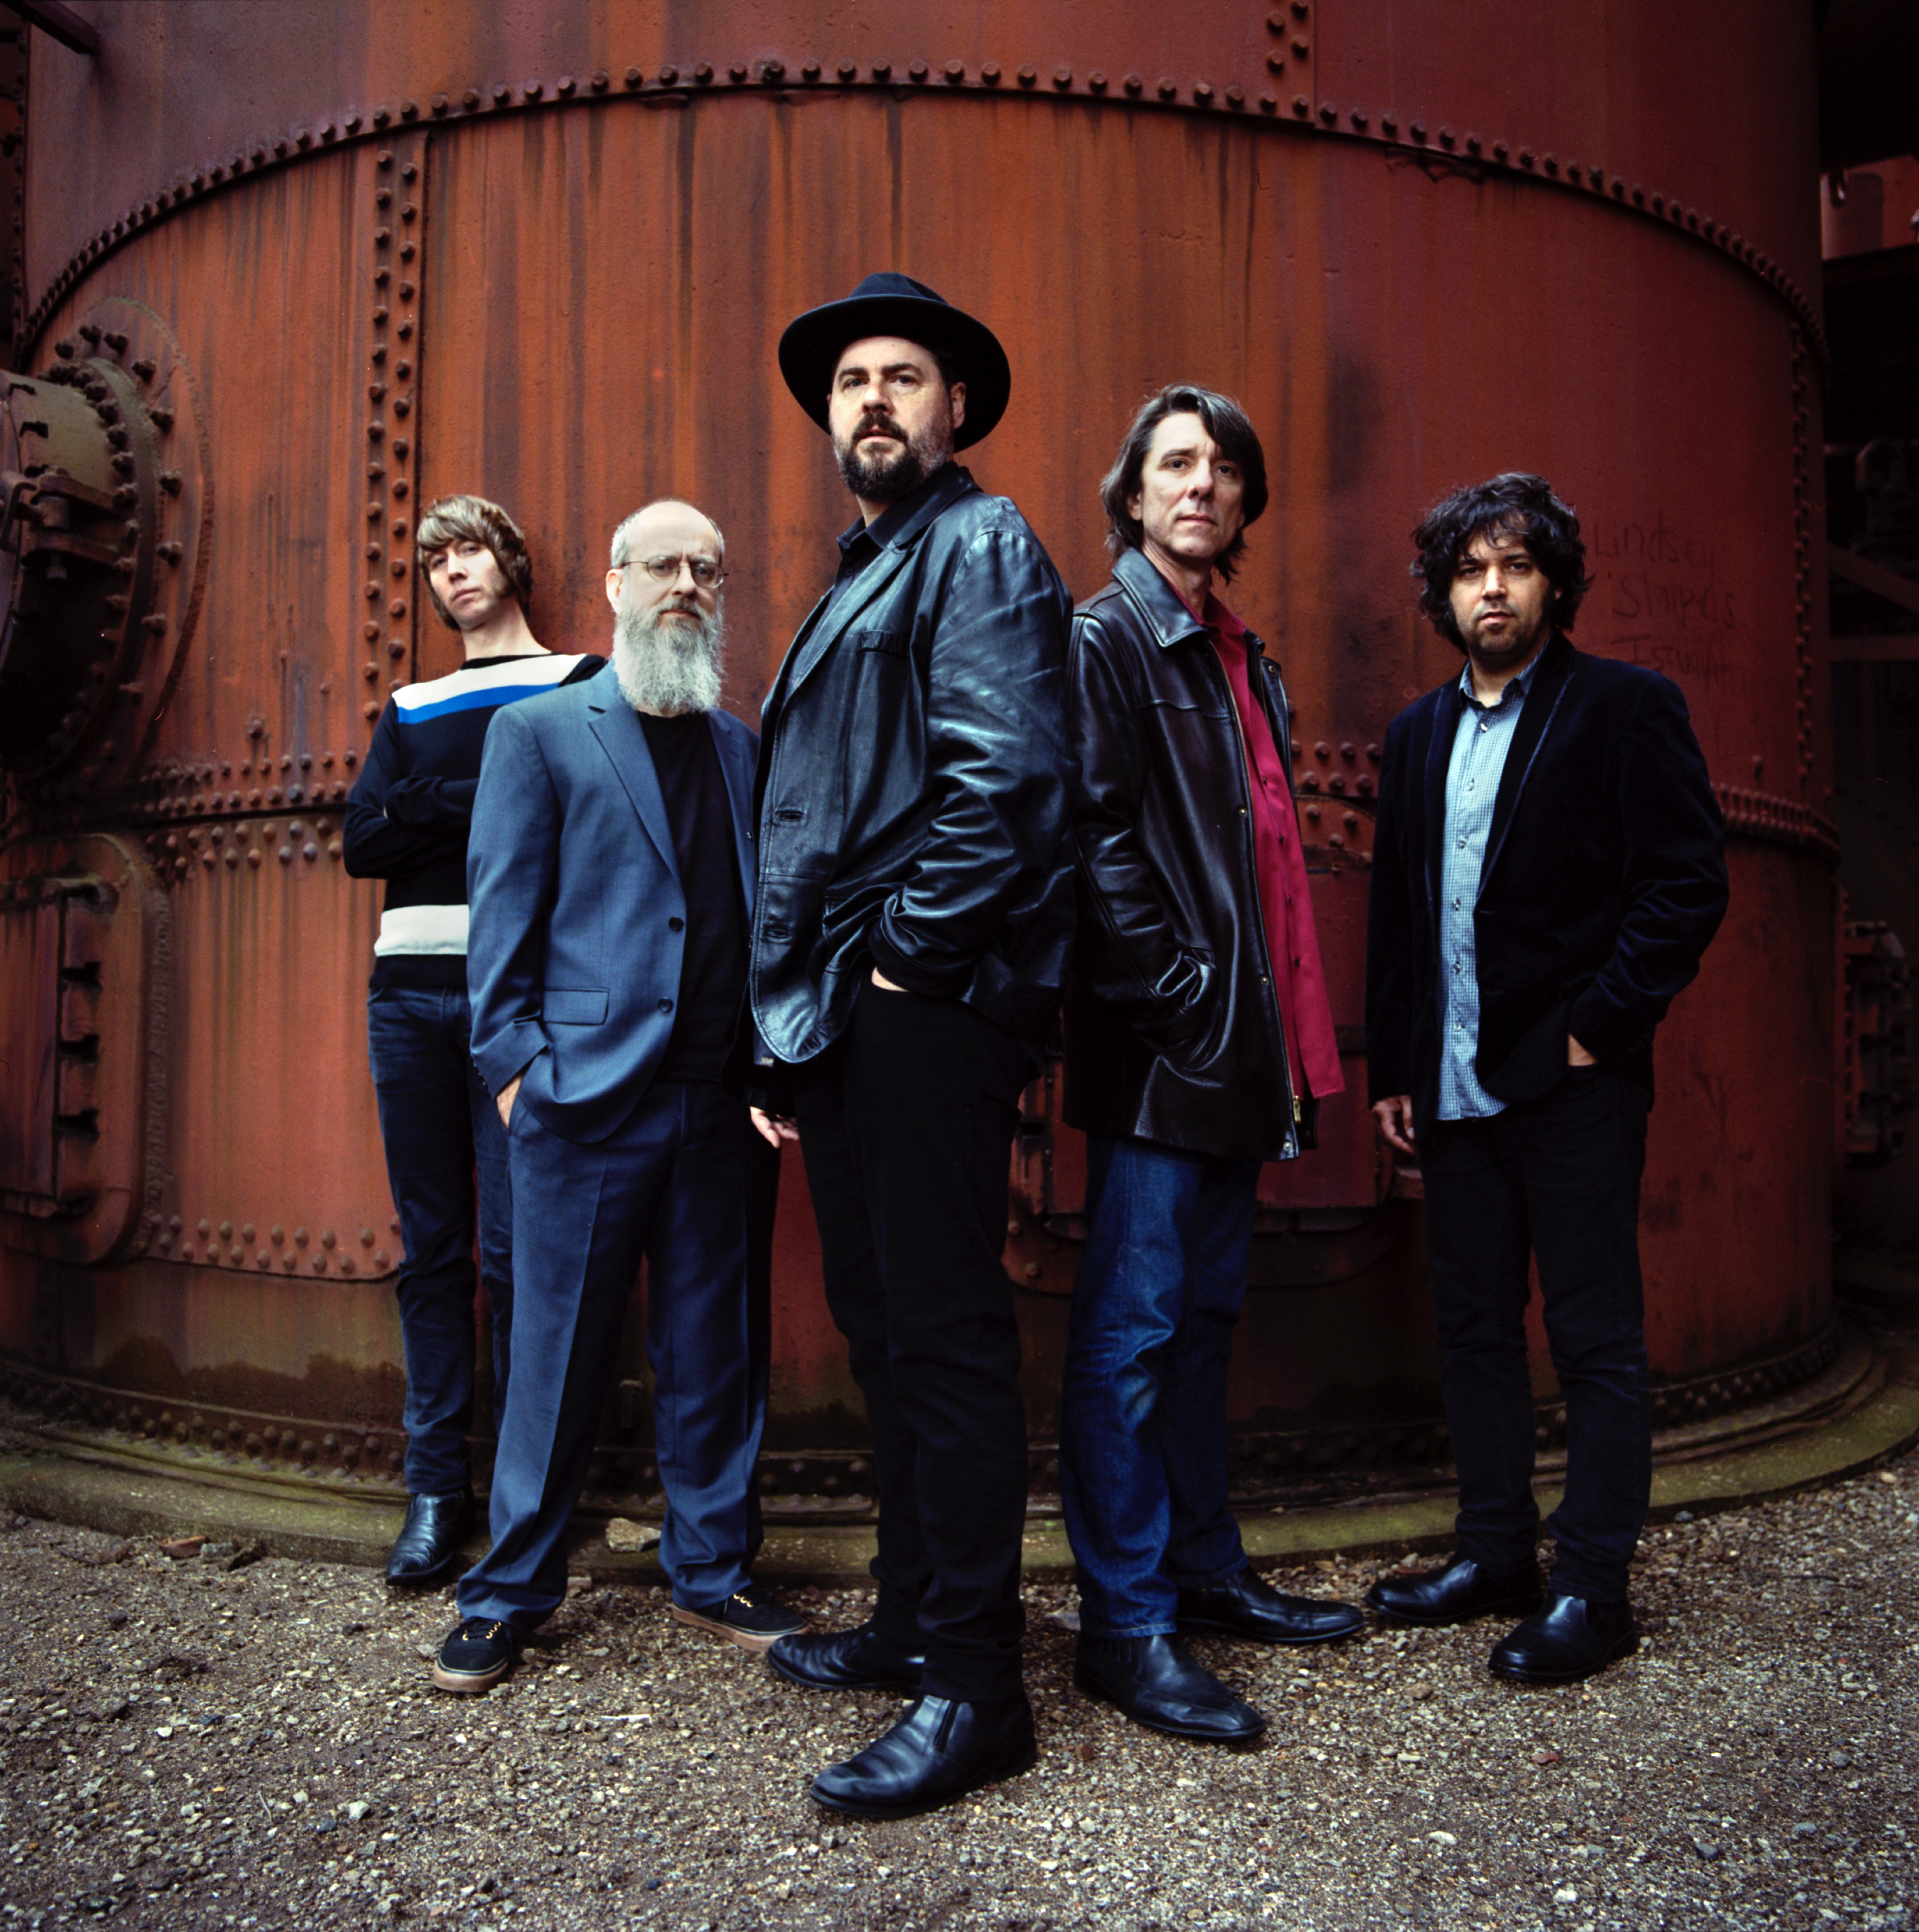 dbt ab clinch1 Everybody at the Table: Talking Politics, Music, and Race with Drive By Truckers Patterson Hood